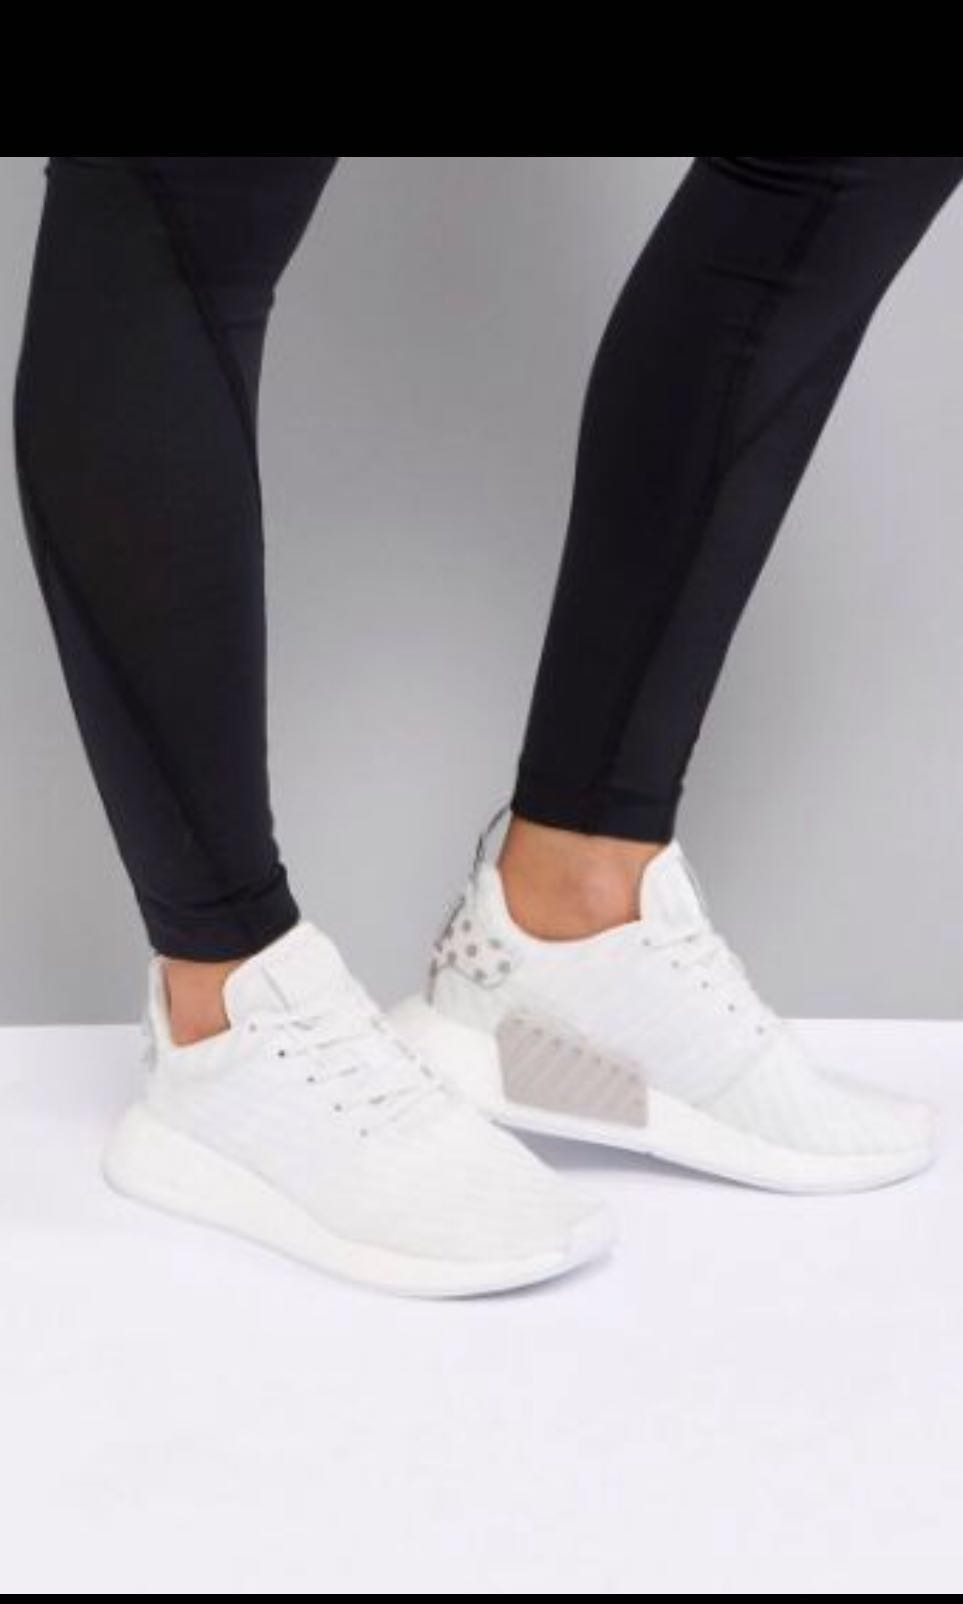 c521ddb08 Home · Women s Fashion · Shoes · Sneakers. photo photo photo photo